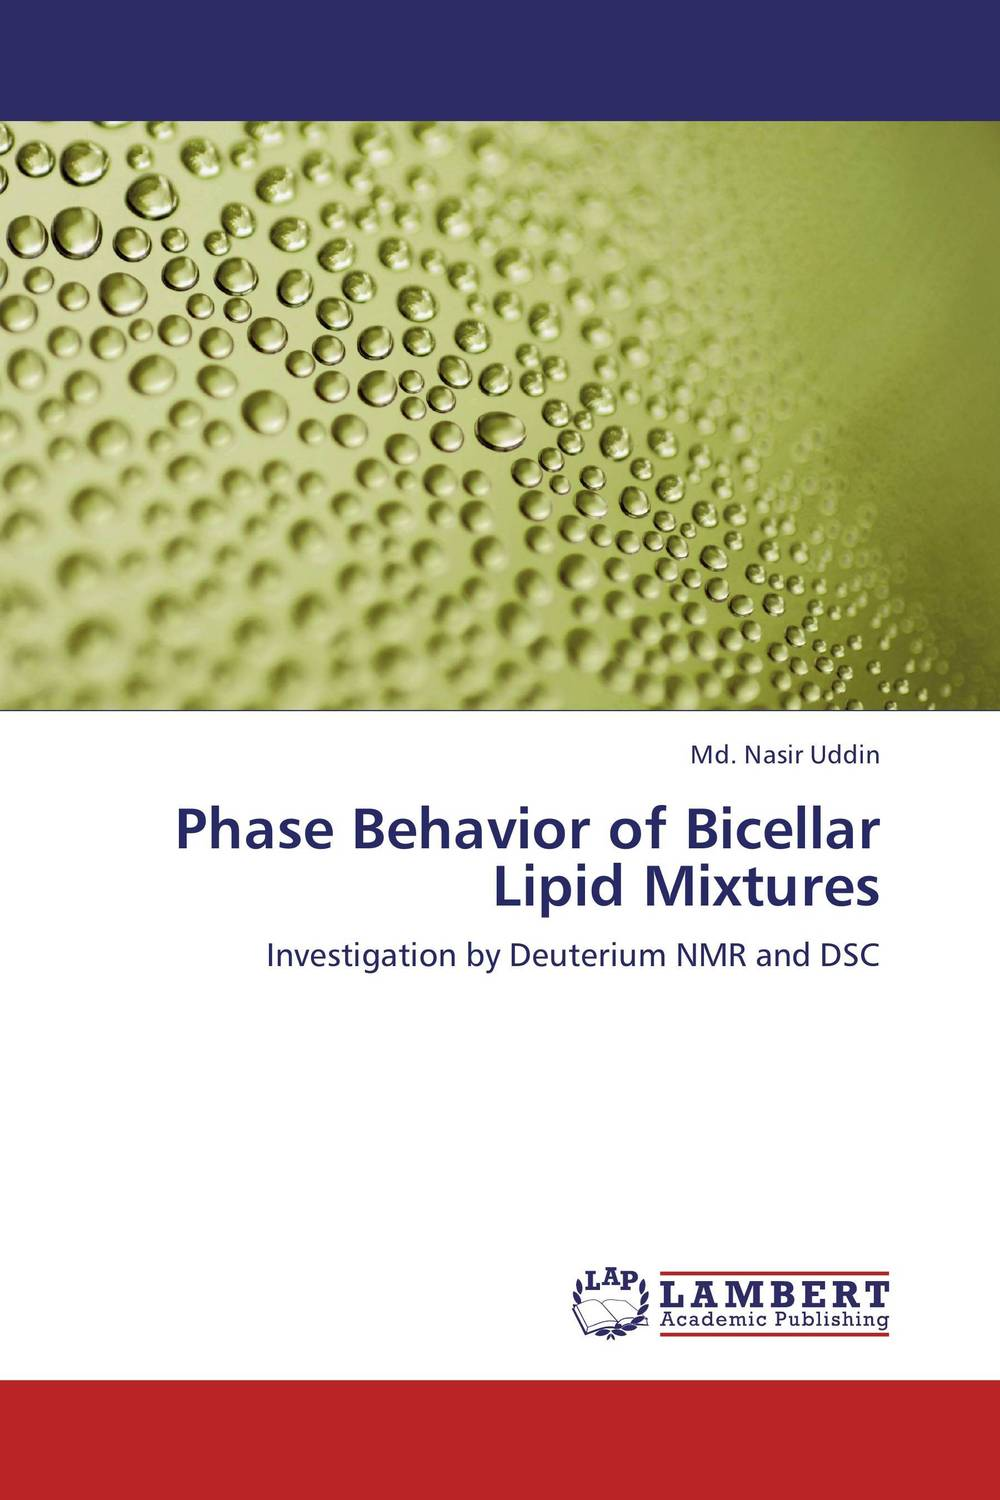 Phase Behavior of Bicellar Lipid Mixtures